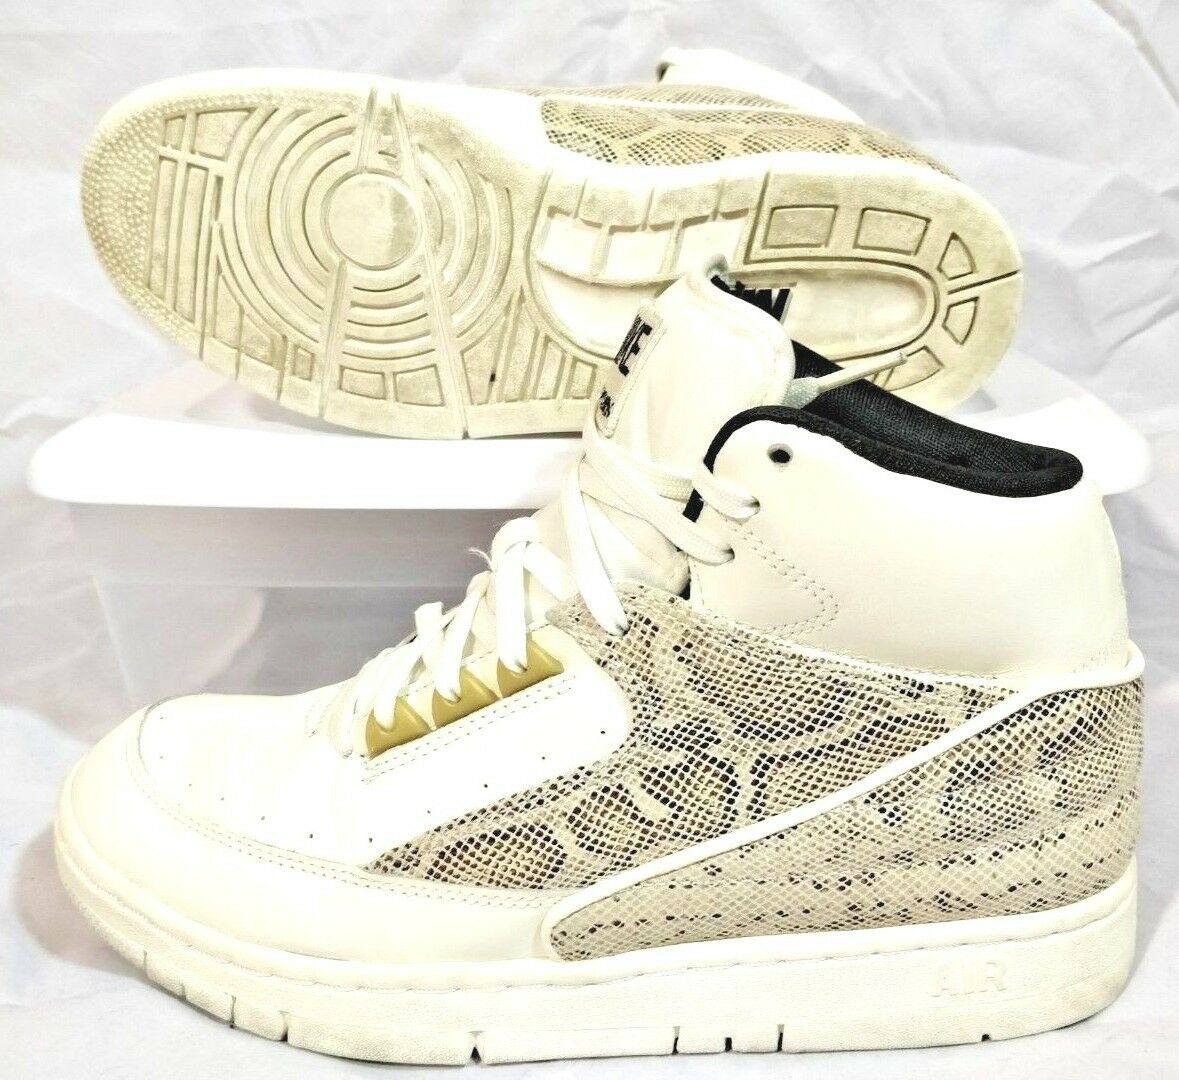 Nike Air Python Mens 7 Basketball Shoes Snake C93 best-selling model of the brand